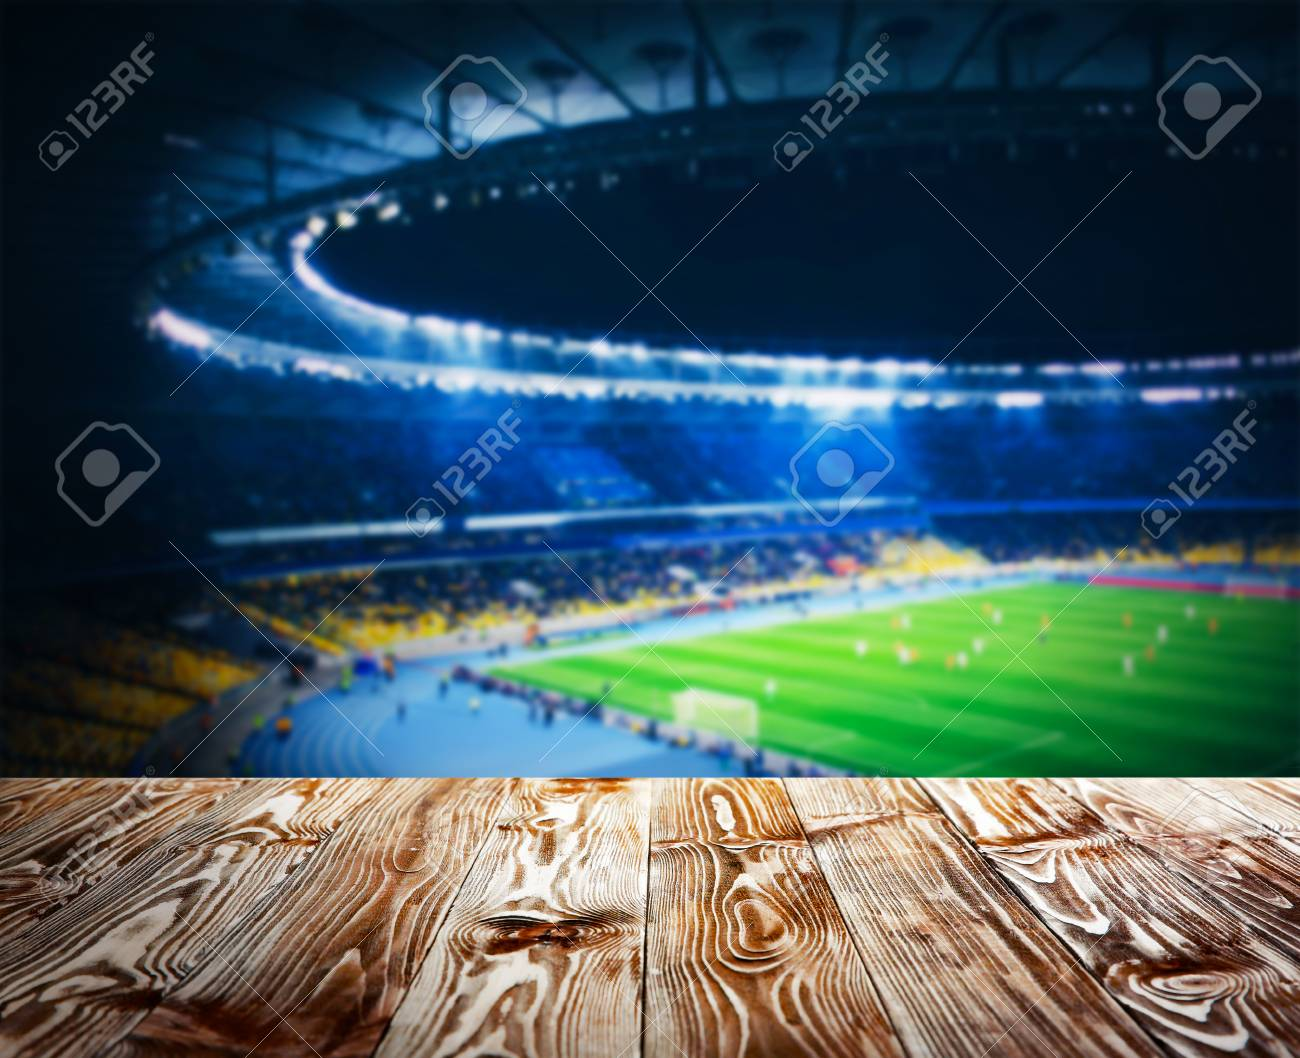 wooden table against football stadium background stock photo picture and royalty free image image 90653846 123rf com